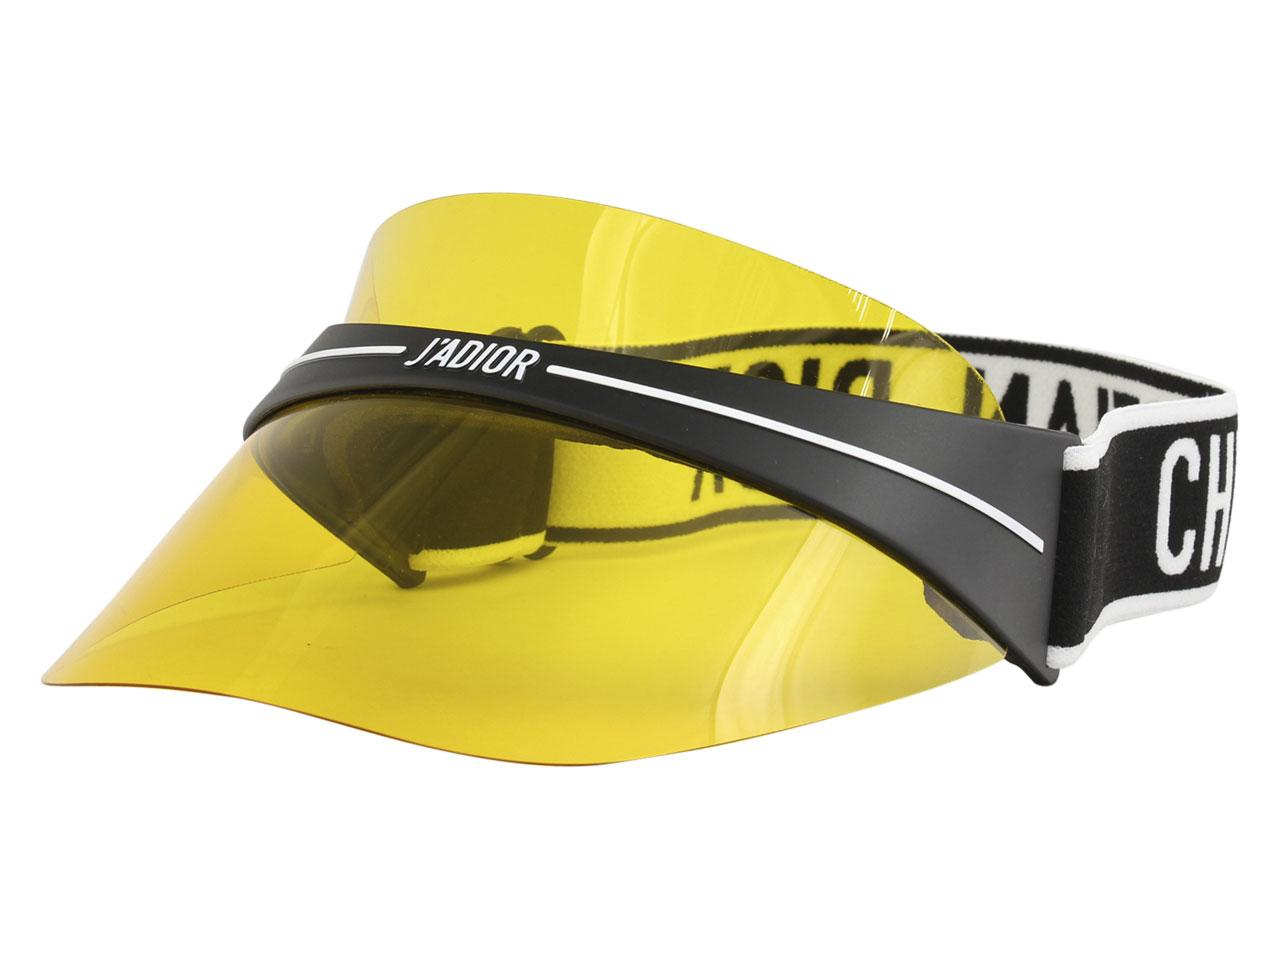 Image of Christian Dior DiorClub1 Adjustable Visor Hat - Black White/Yellow   0TL - One Size Fits Most